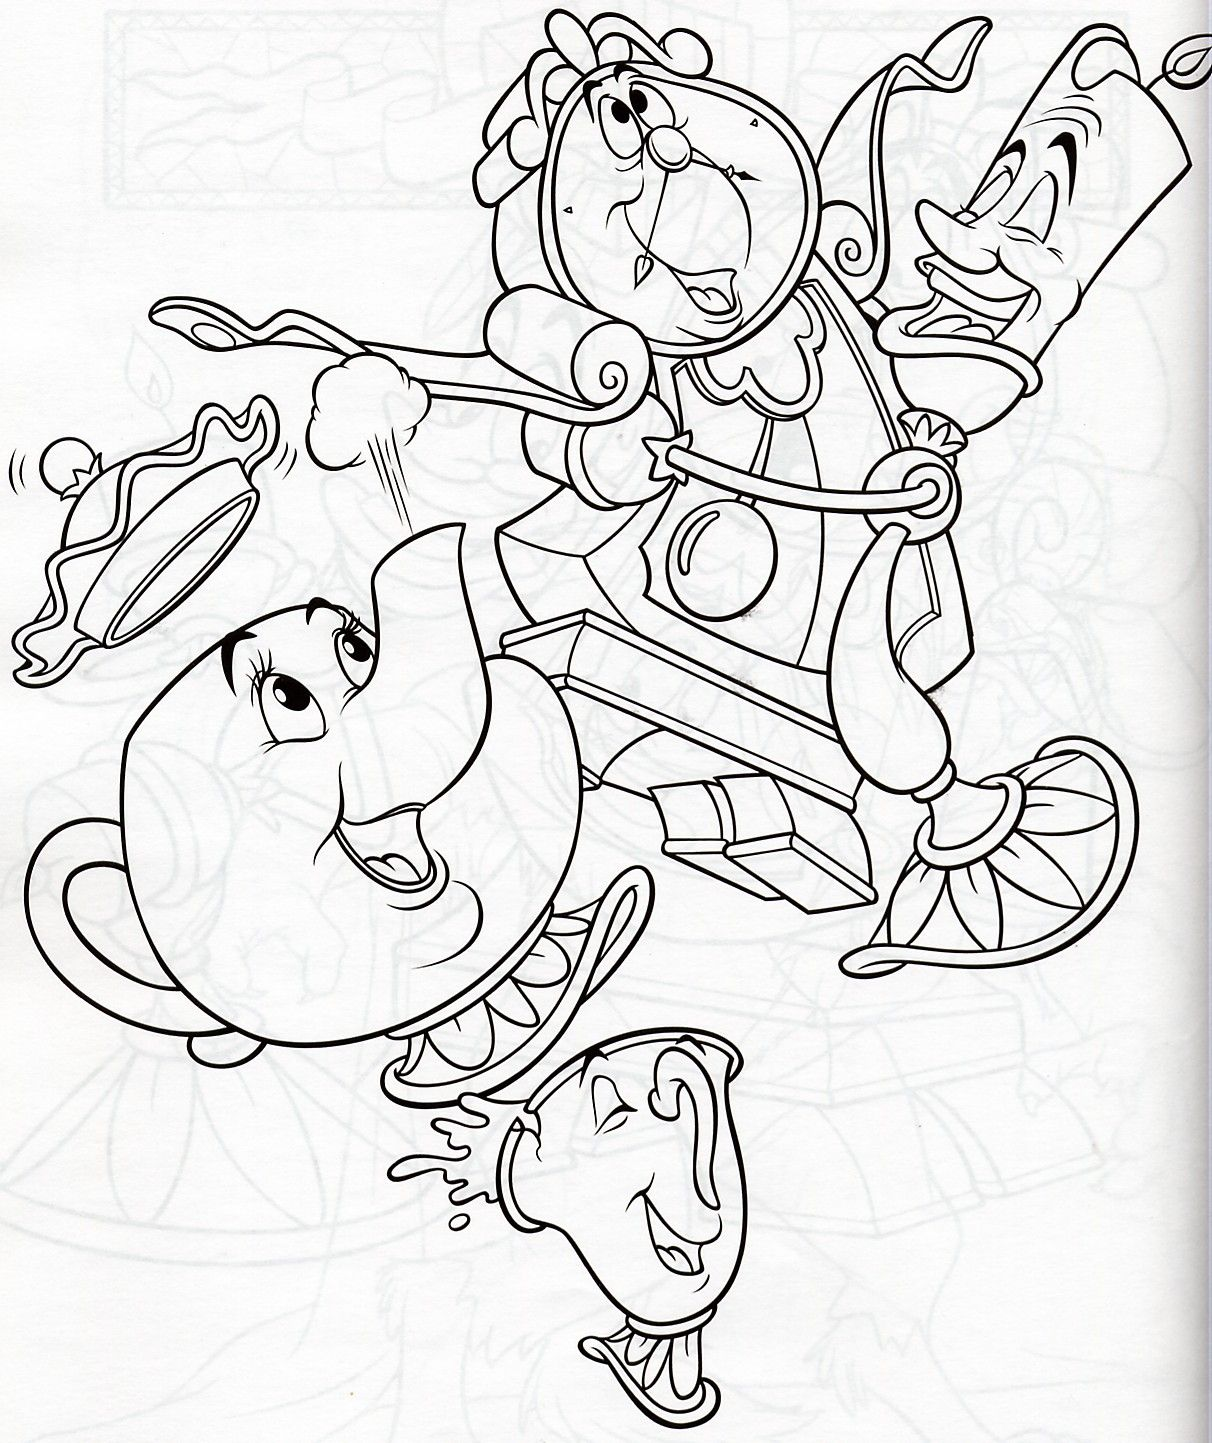 Pin By Lisa Rall On Kraska A Zvire Disney Coloring Pages Cartoon Coloring Pages Coloring Books